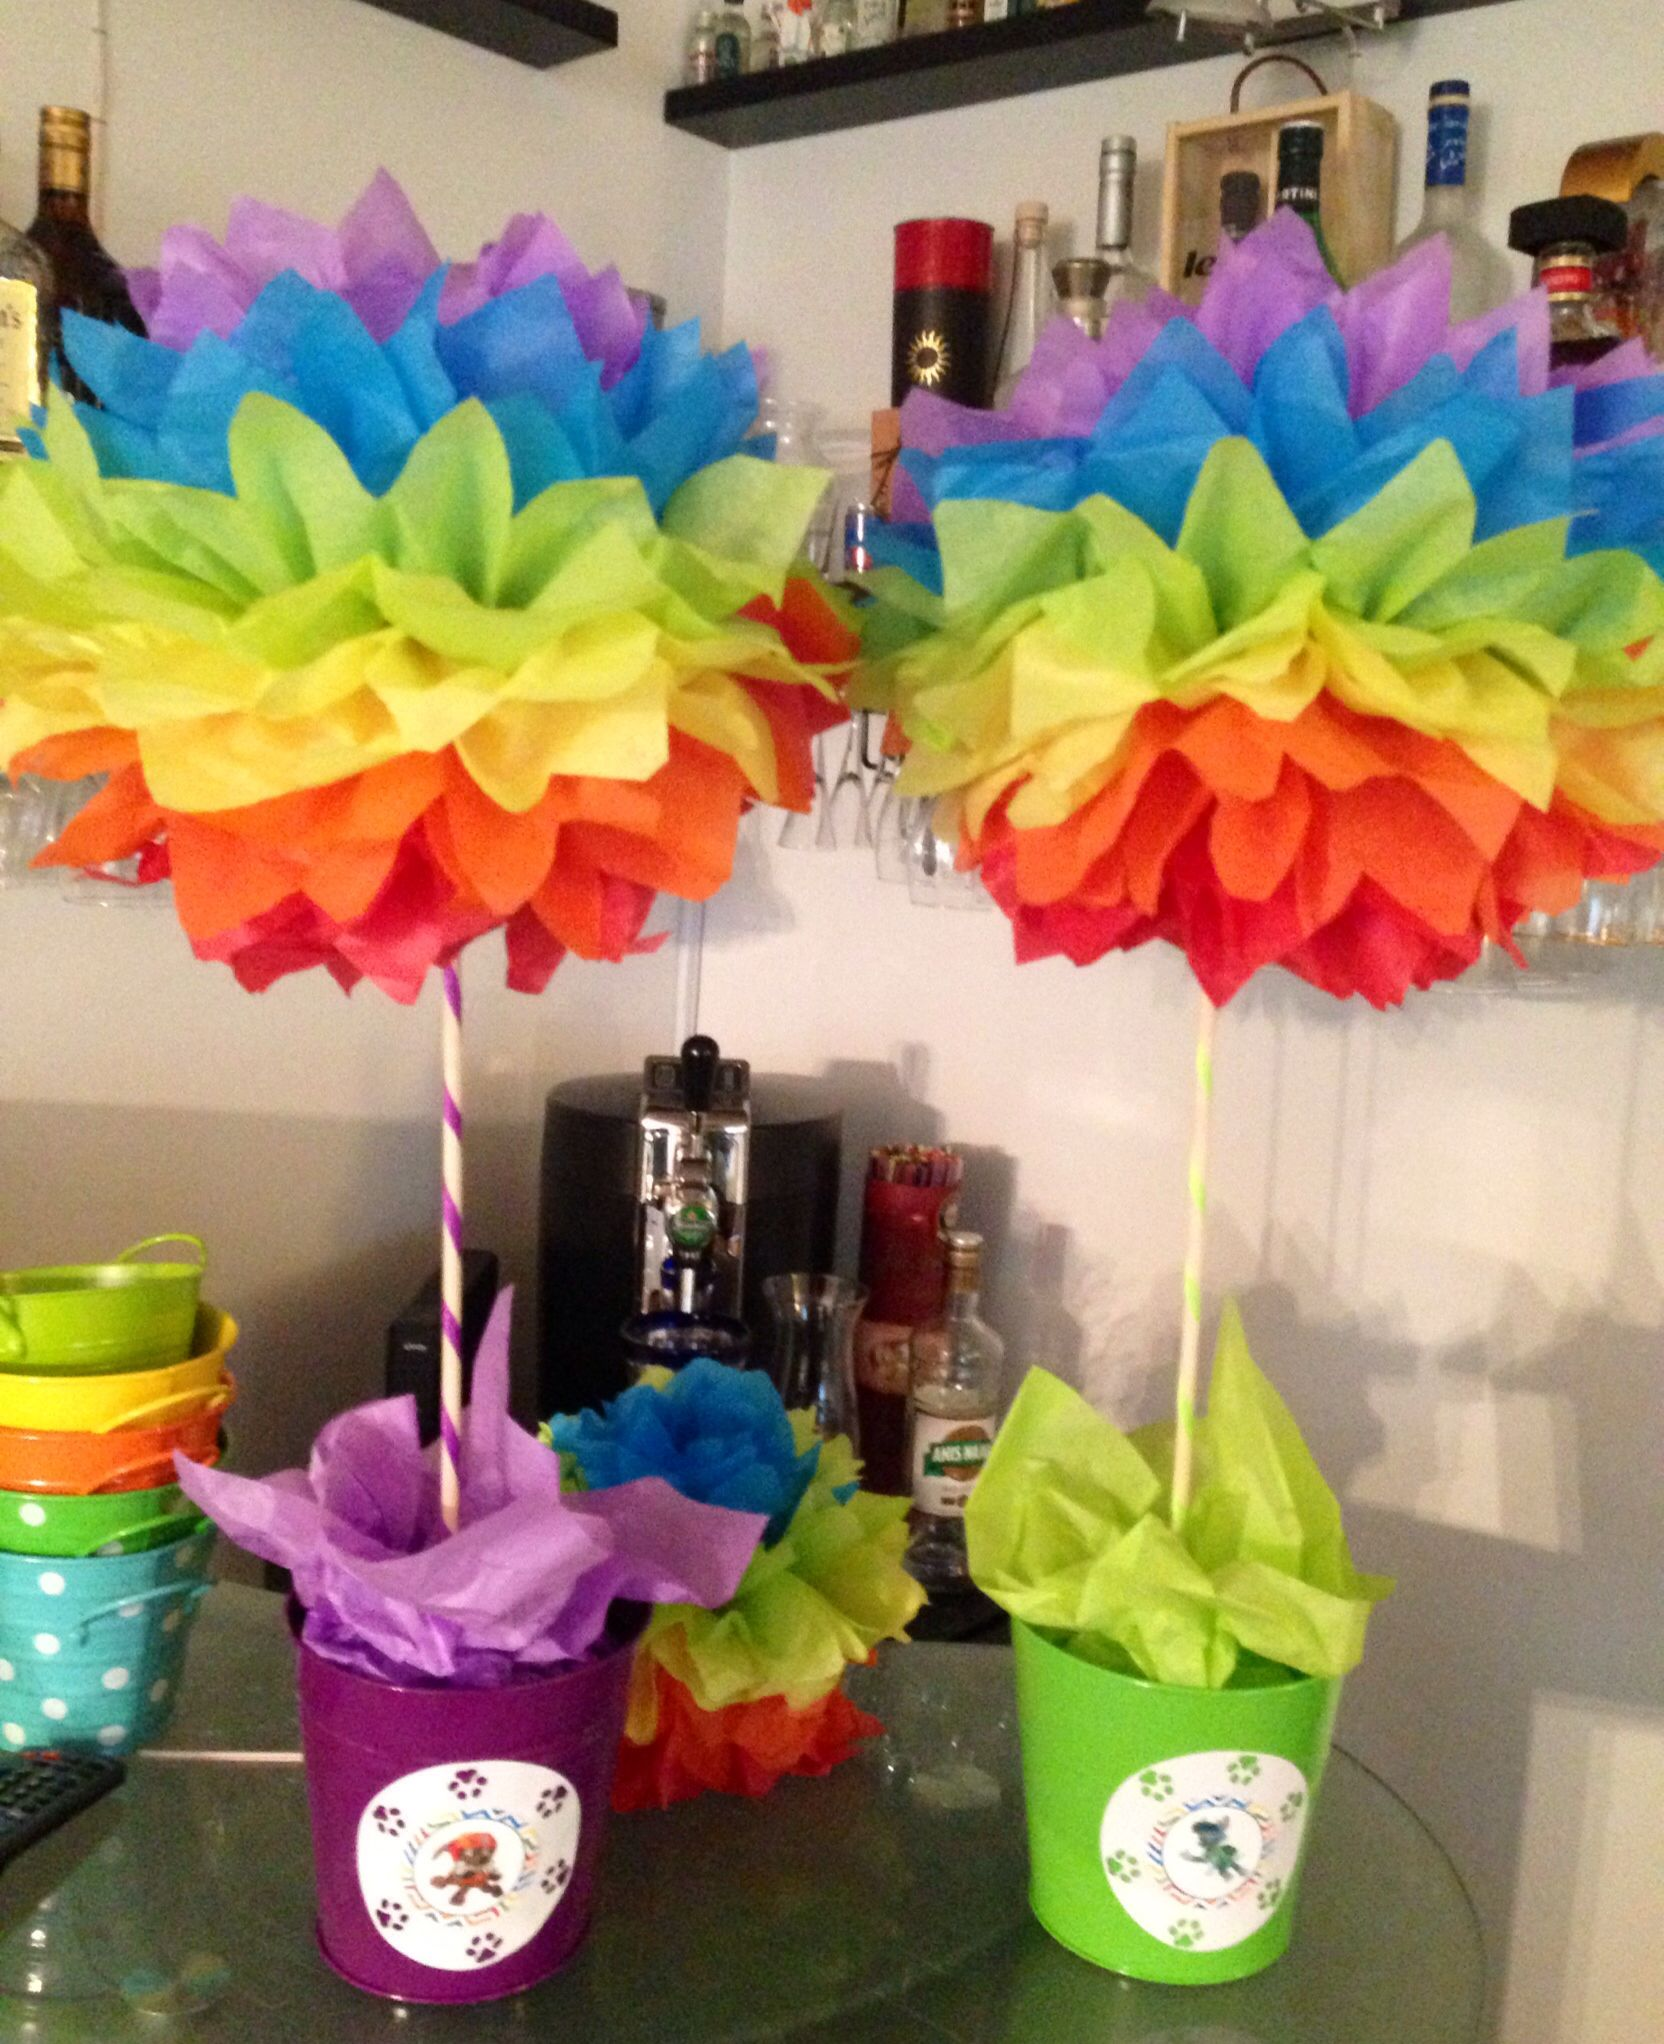 Trolls birthday party decor diy party birthdays and board rainbow paw patrol pompom centerpieces or for troll birthday party dhlflorist Image collections